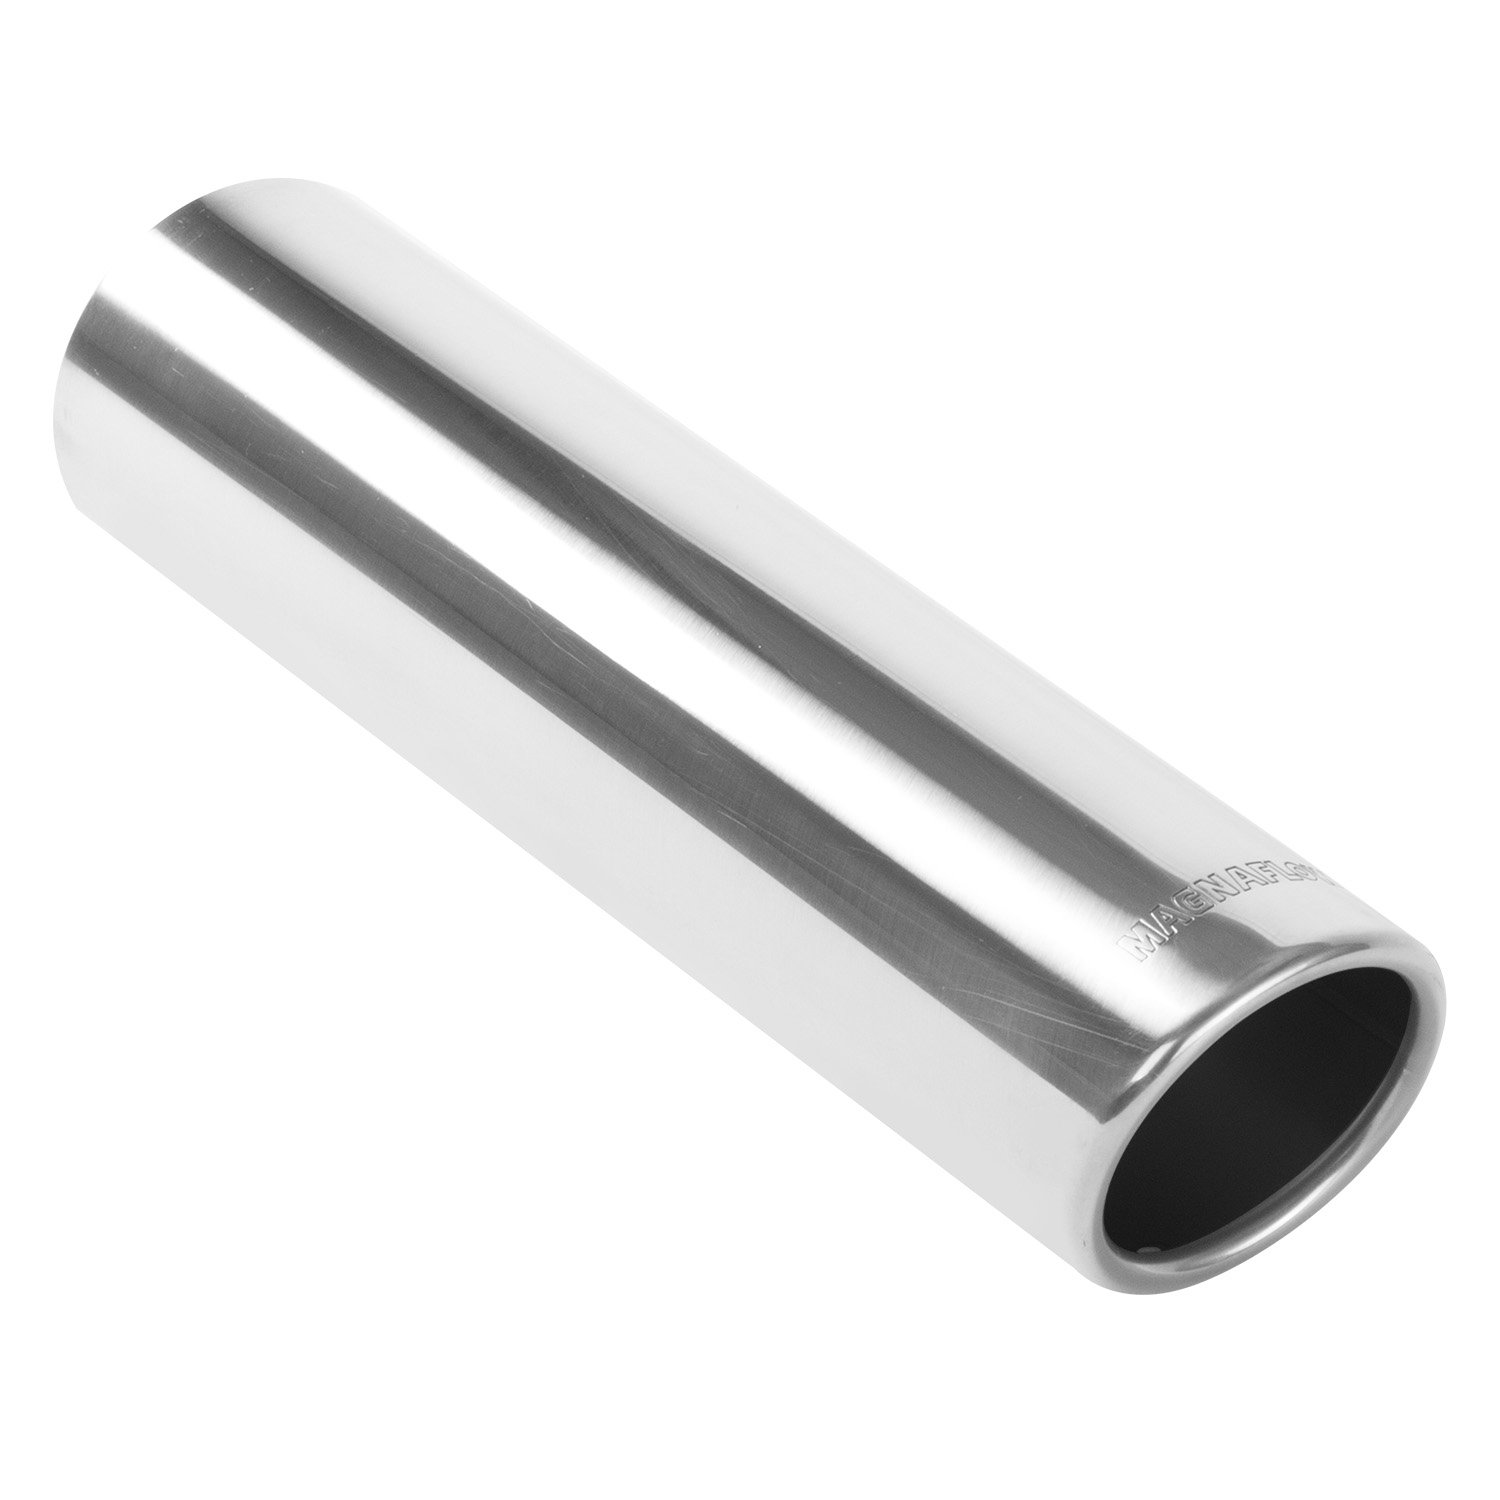 Magnaflow 35110 EXHAUST TAIL PIPE TIP